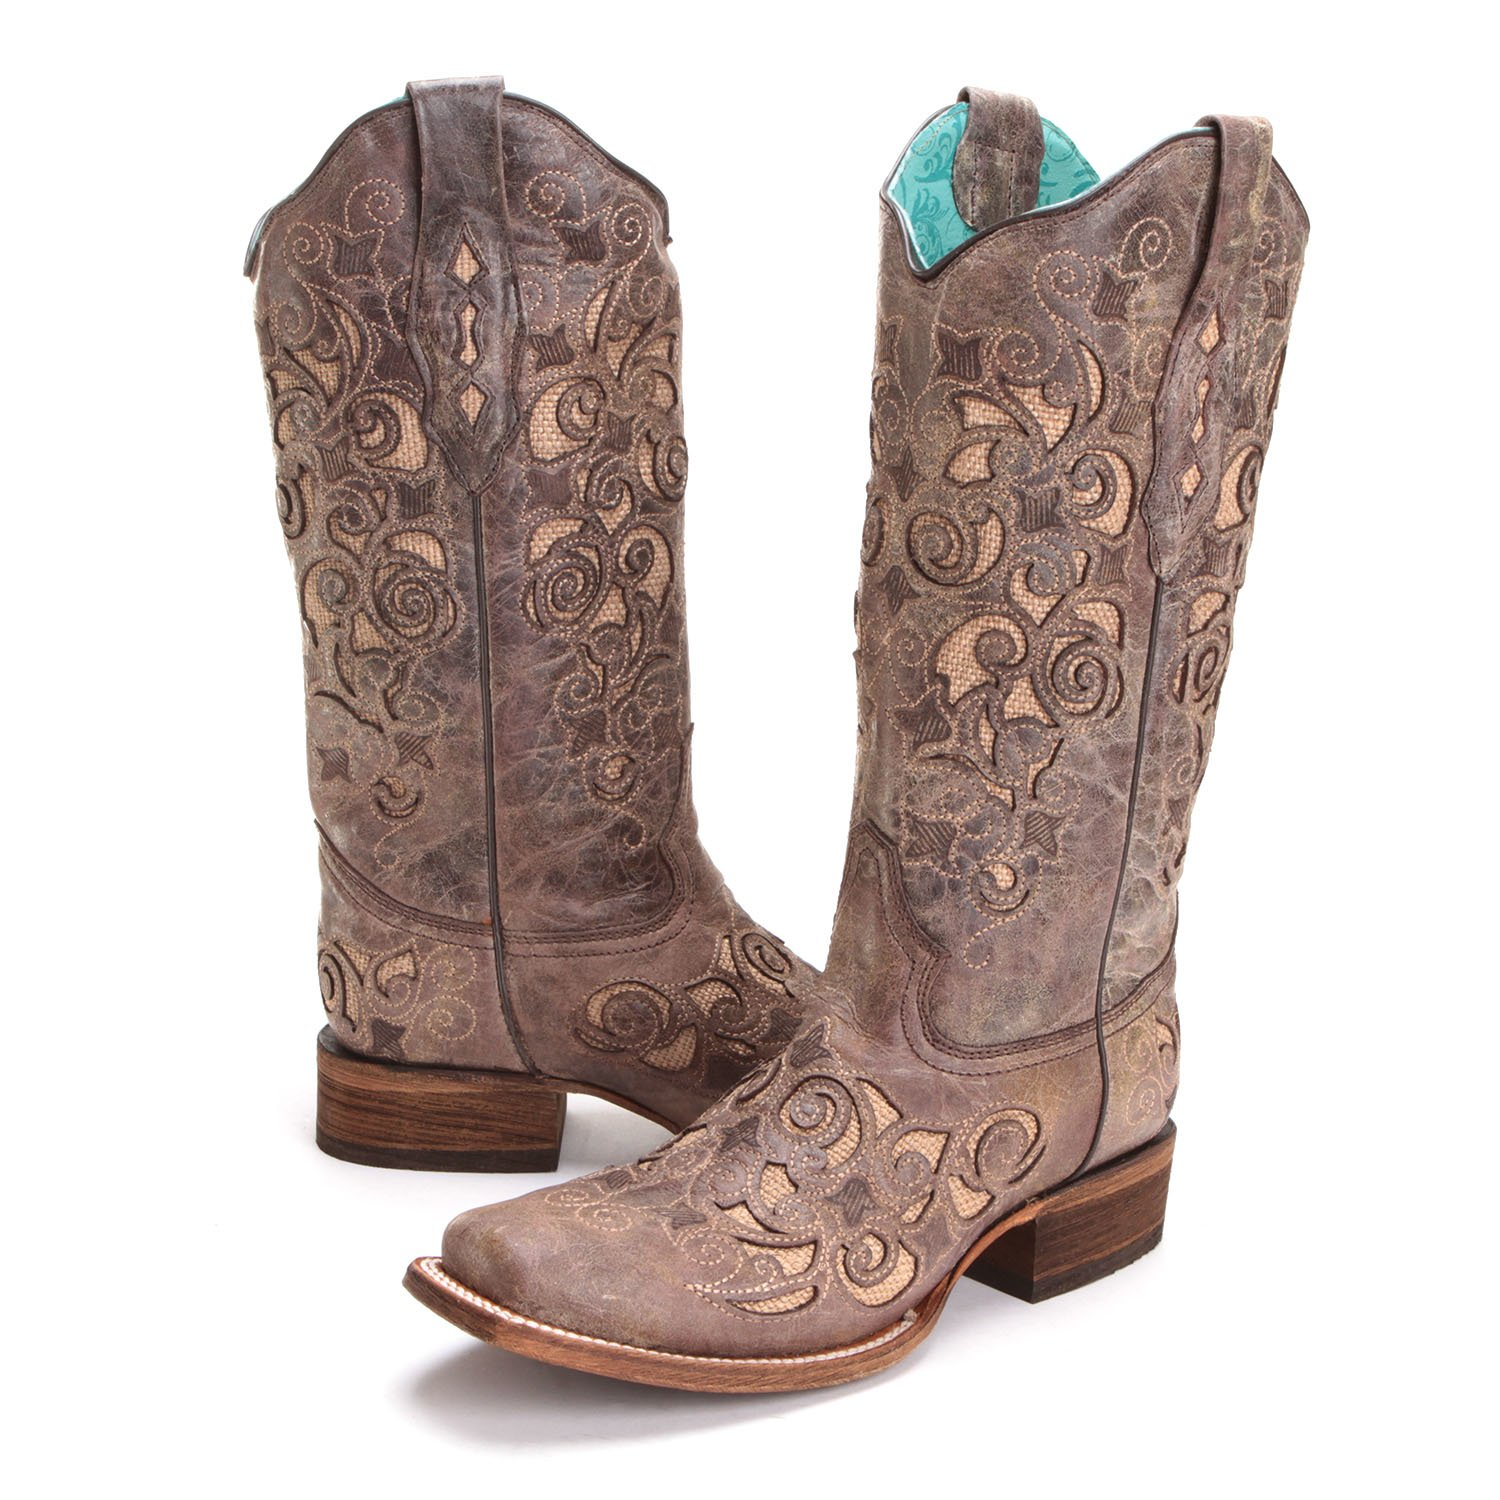 cowboy boots for women corral womens jute inlay square toe cowboy boots brown MZBOVZQ